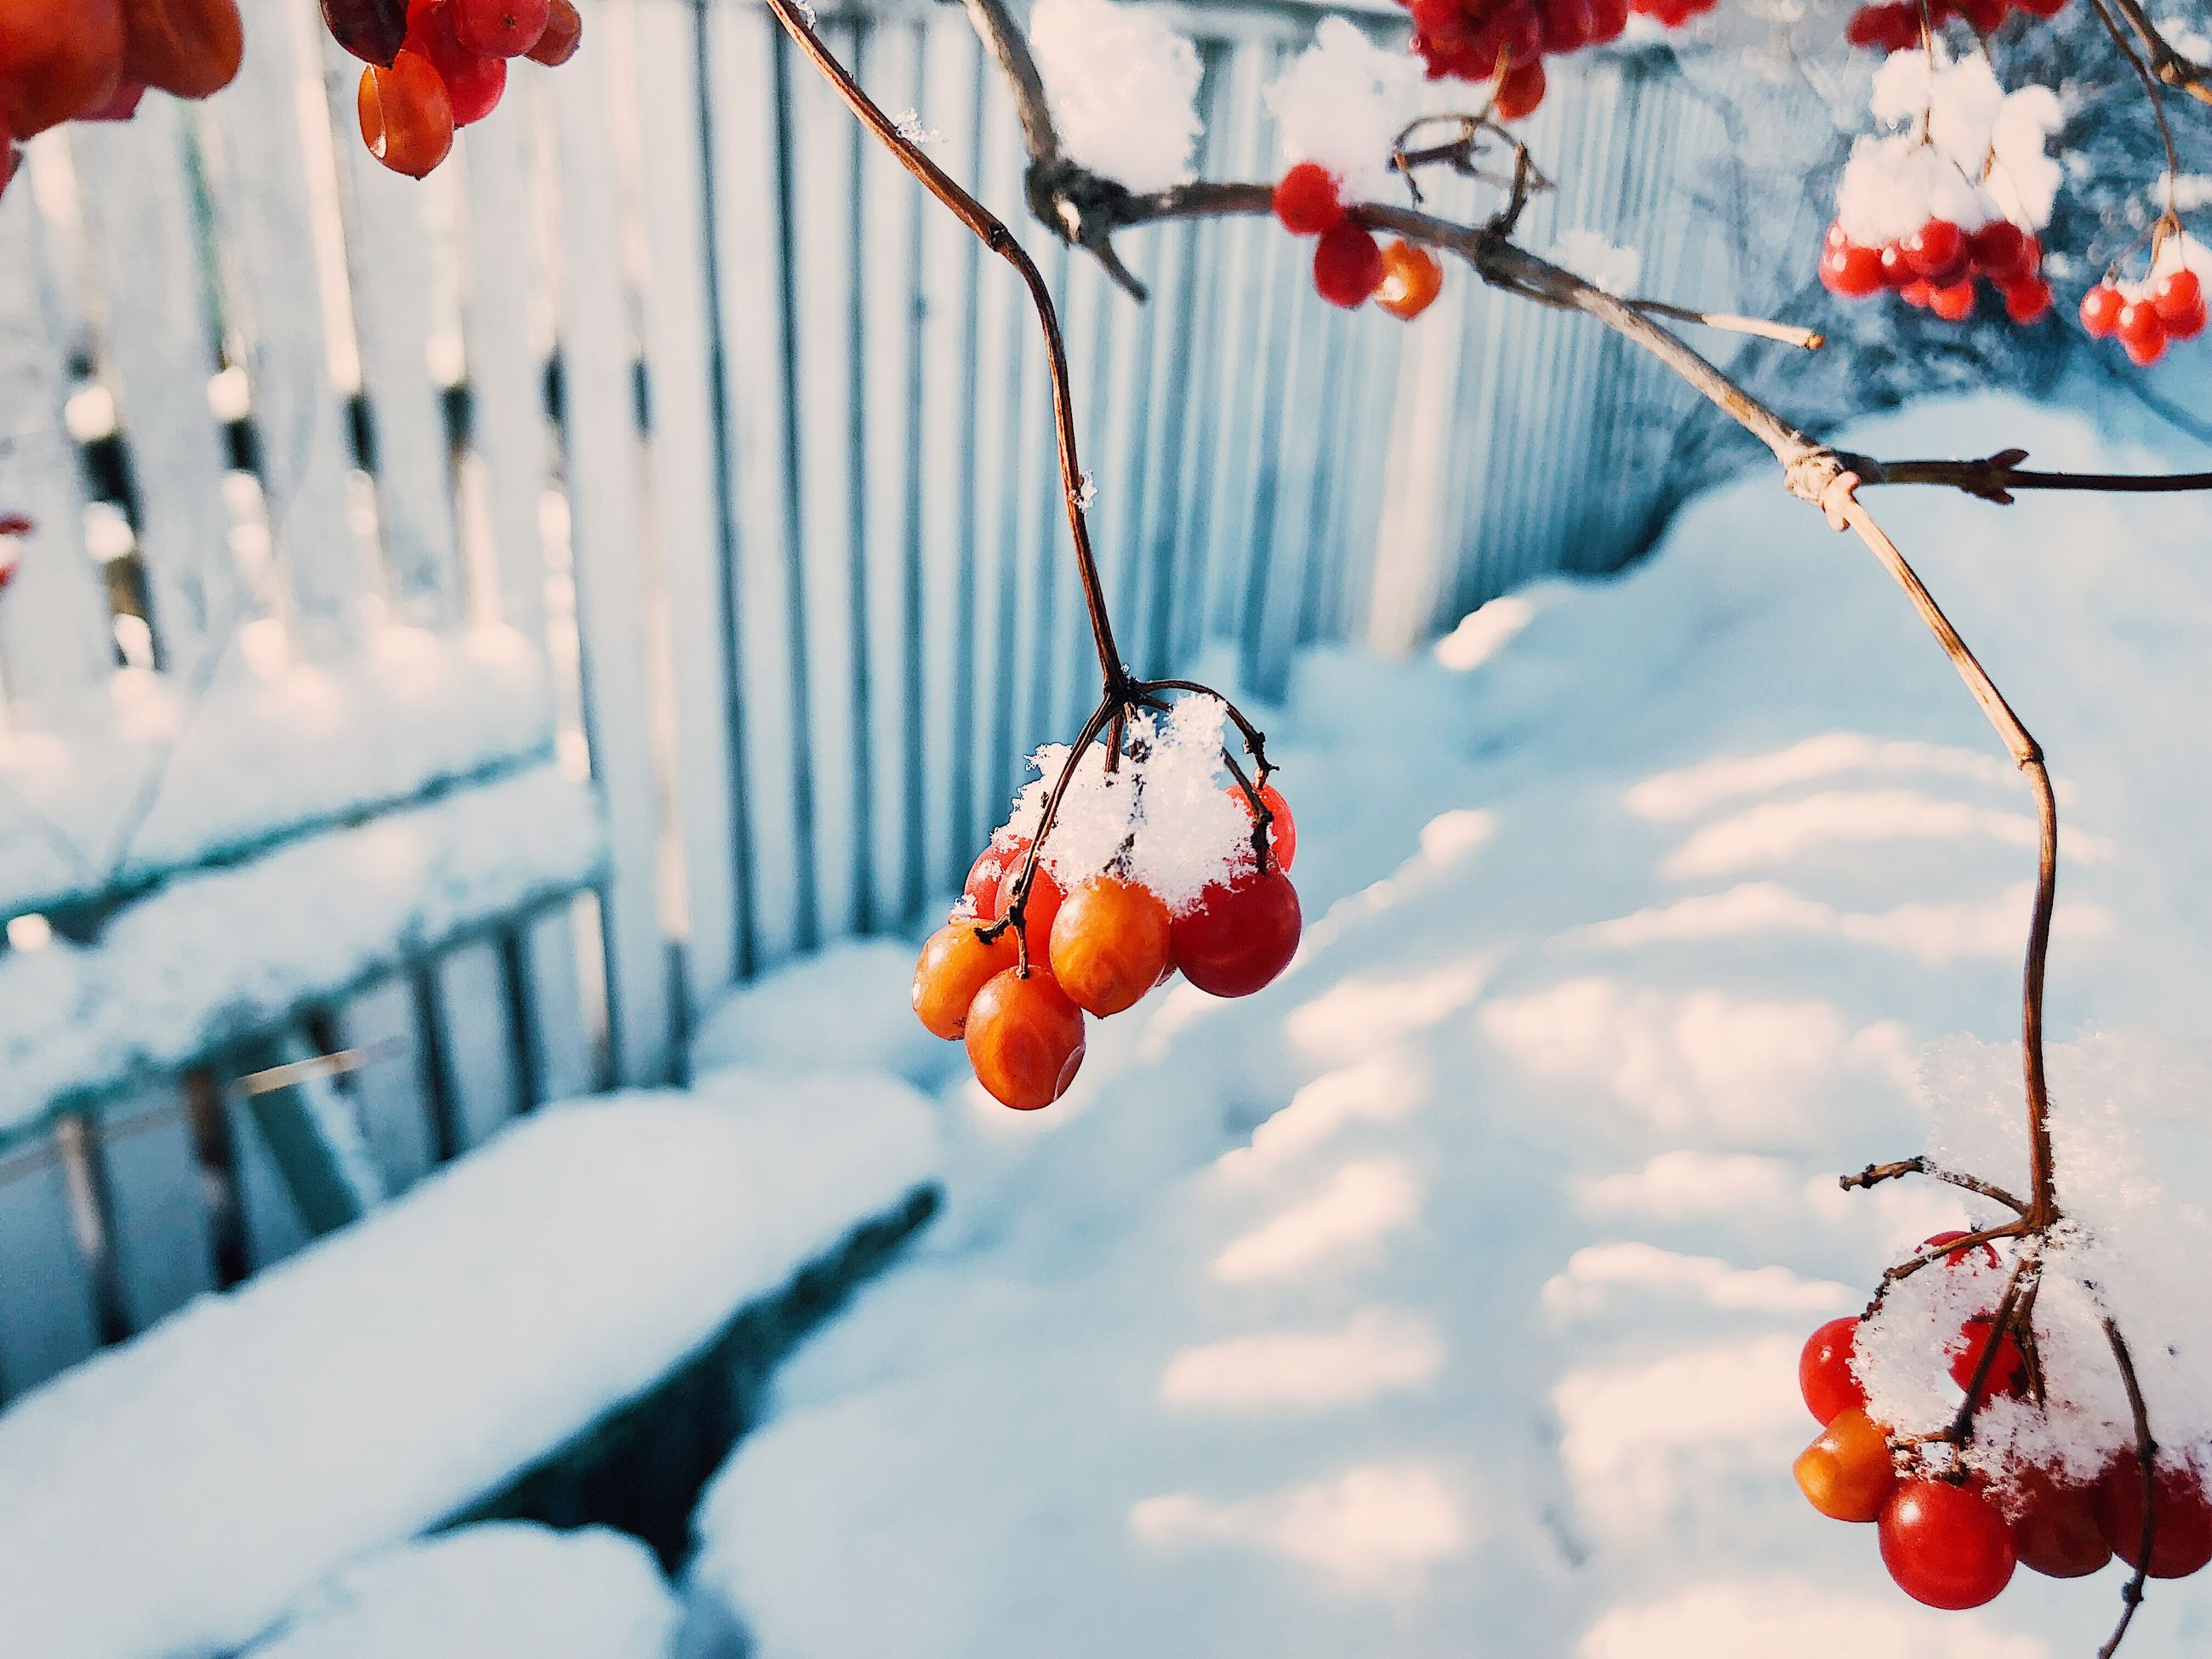 fruit, food and drink, food, healthy eating, winter, snow, nature, berry fruit, cold temperature, day, focus on foreground, twig, freshness, plant, red, close-up, tree, branch, no people, outdoors, ripe, rowanberry